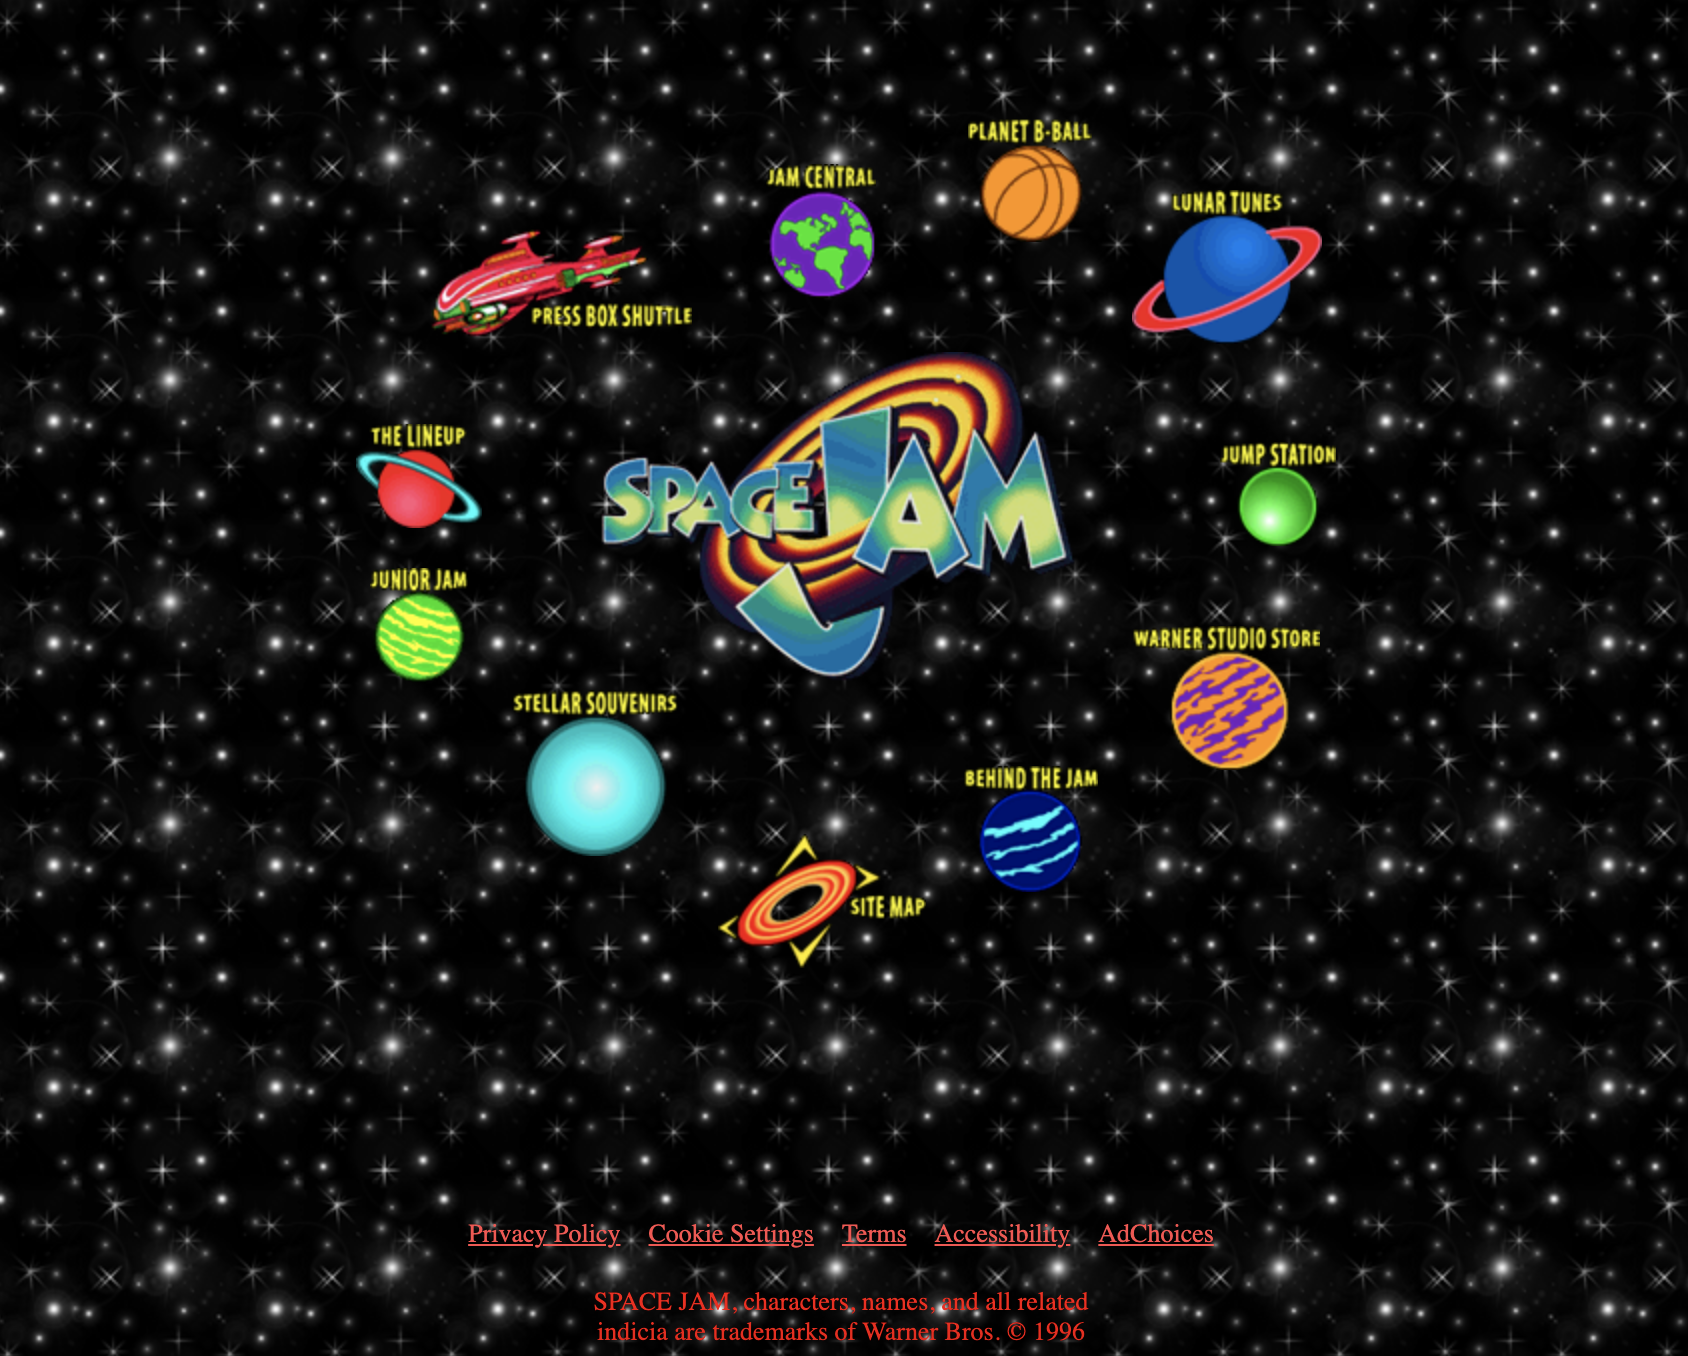 The Space Jam website from 1996, with a black star background and planets